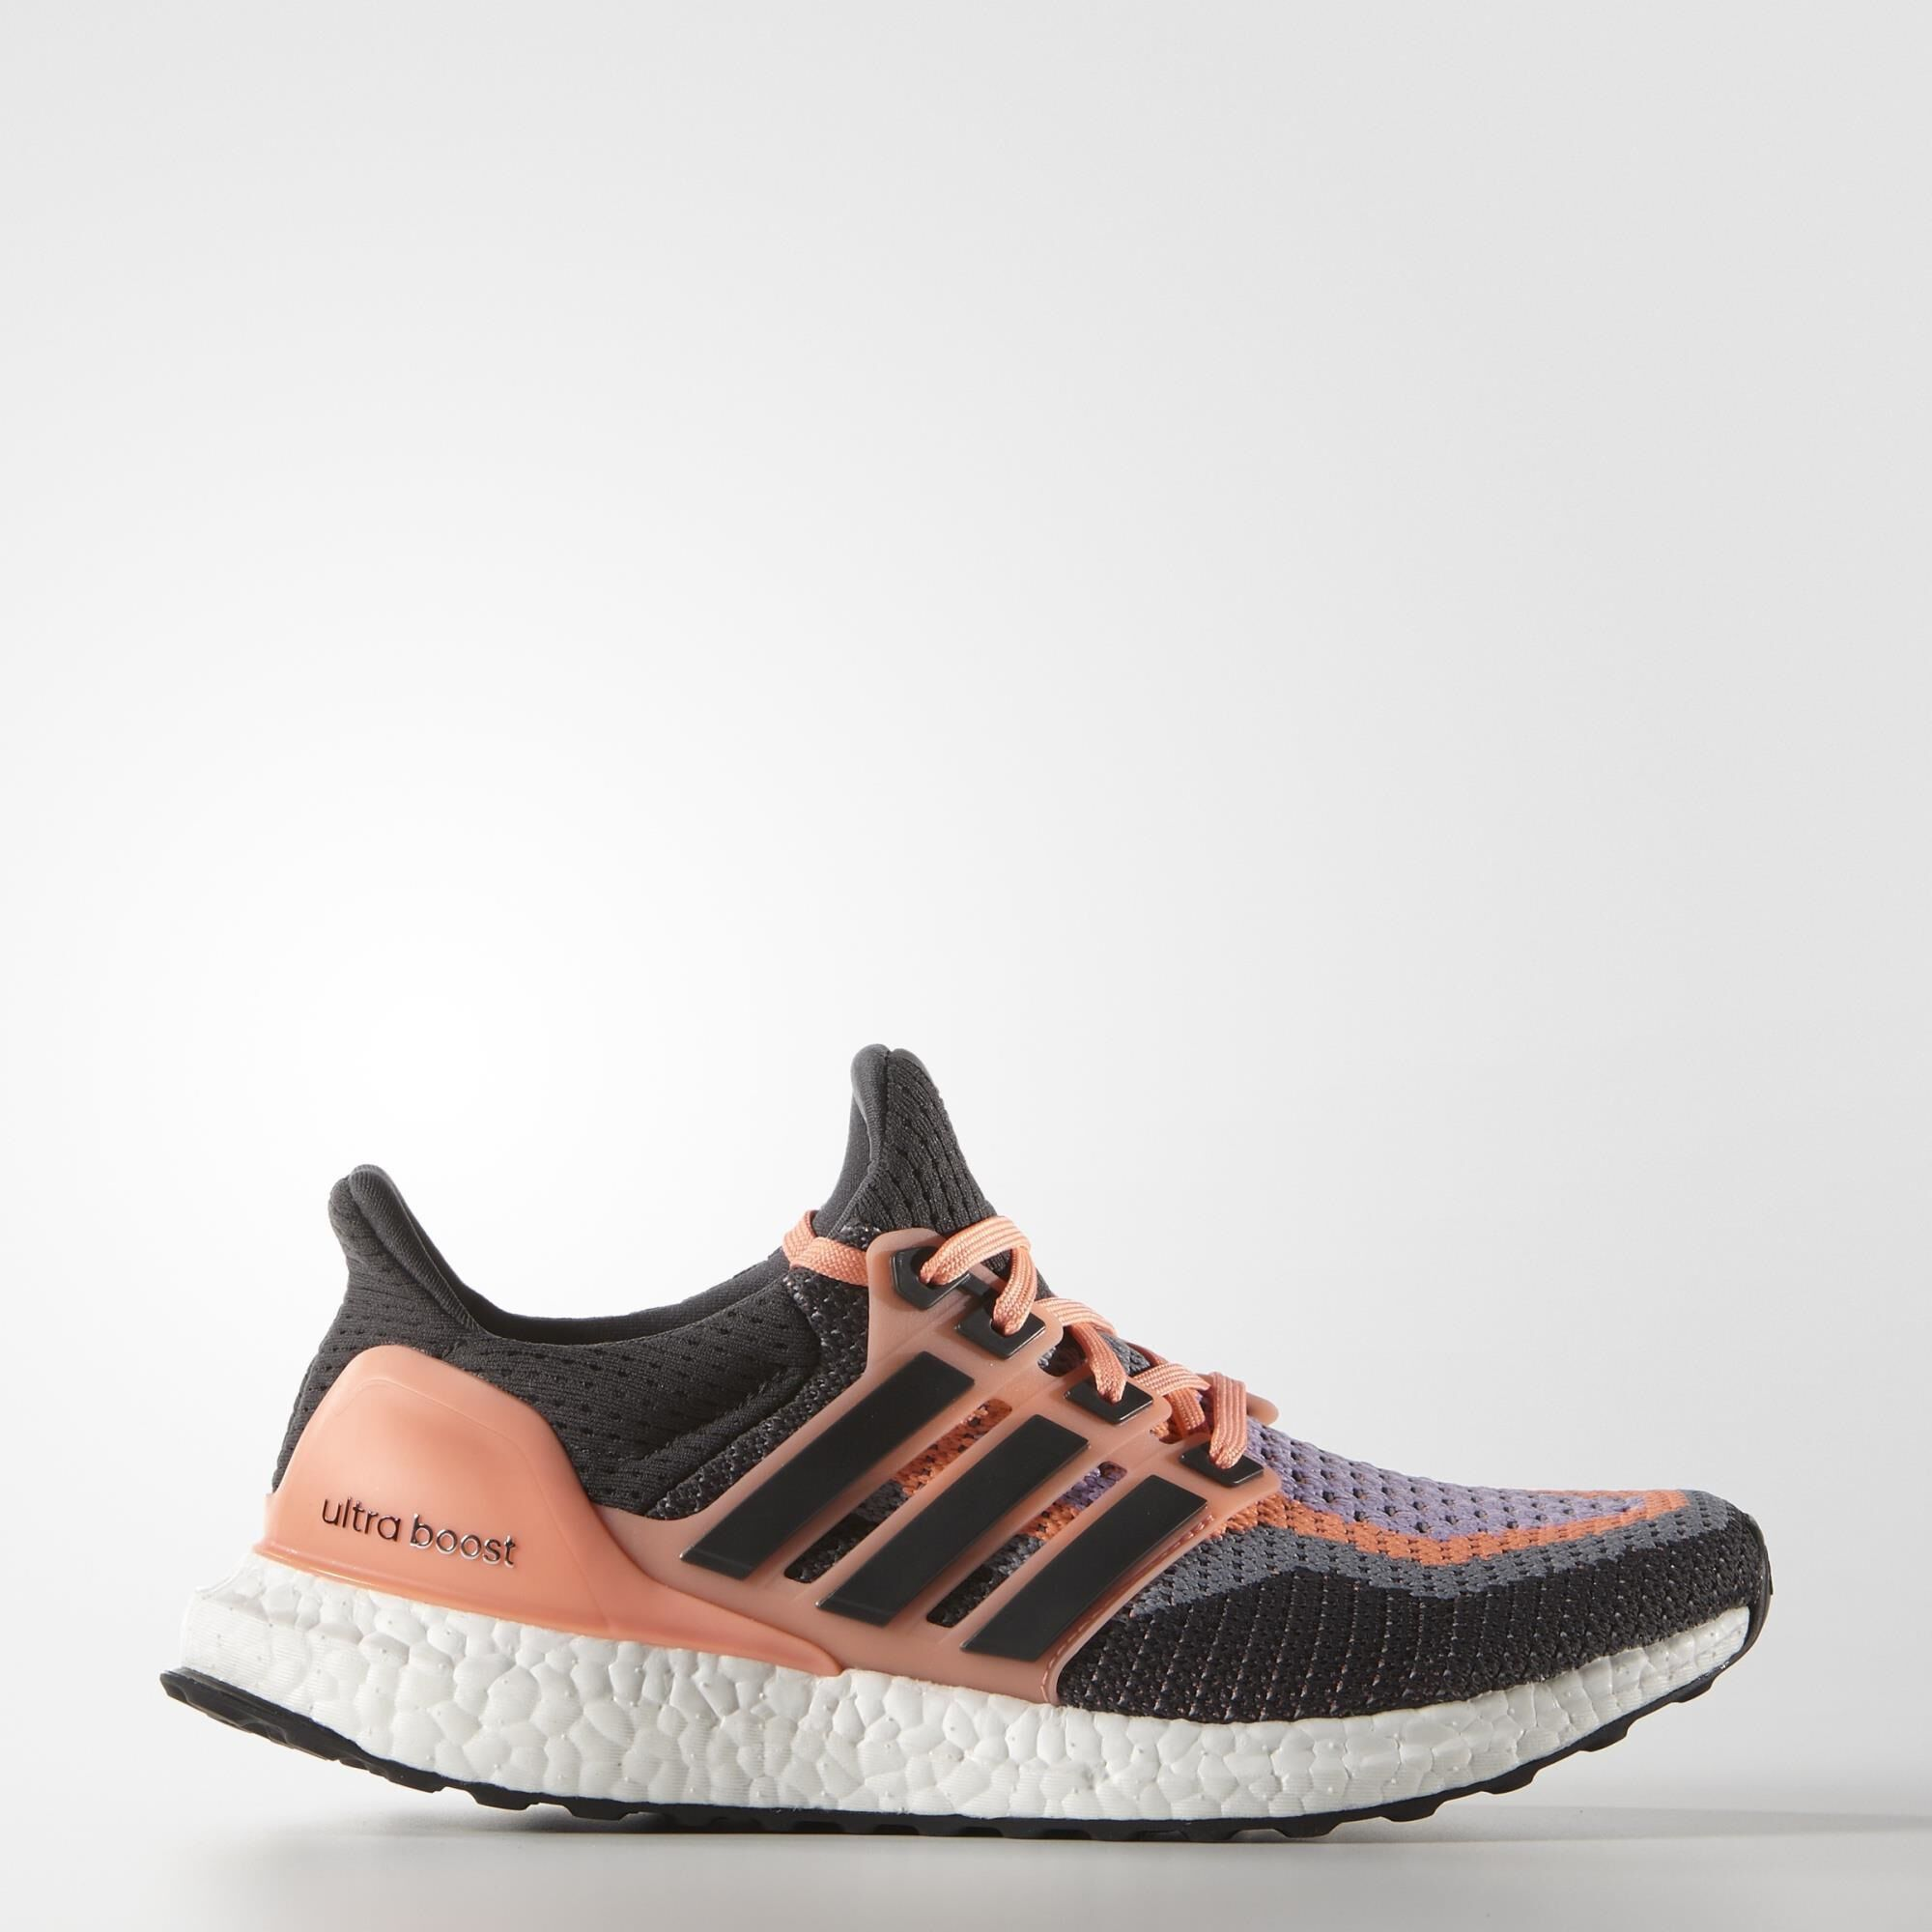 Adidas Ultra Boost Shoes Images